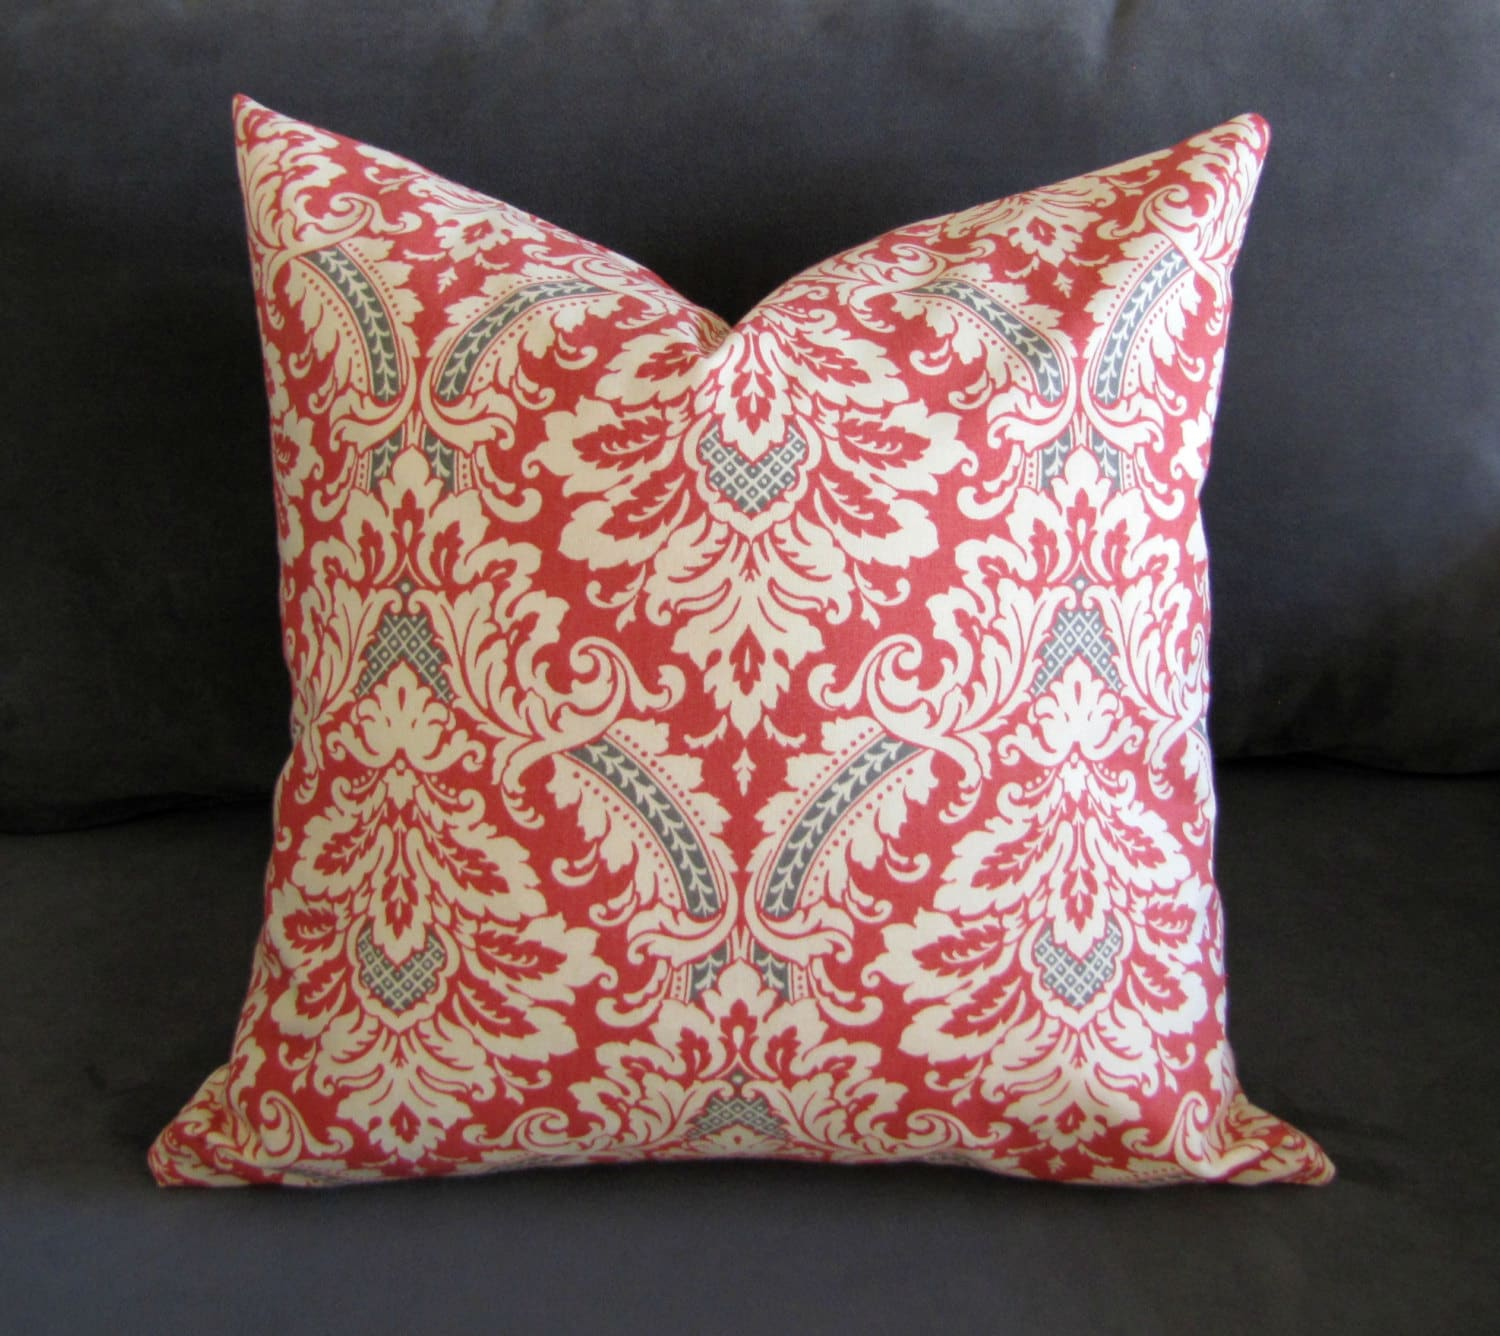 Throw Pillows Damask : Burnt orange throw pillow damask print sofa pillow by GratefulHome